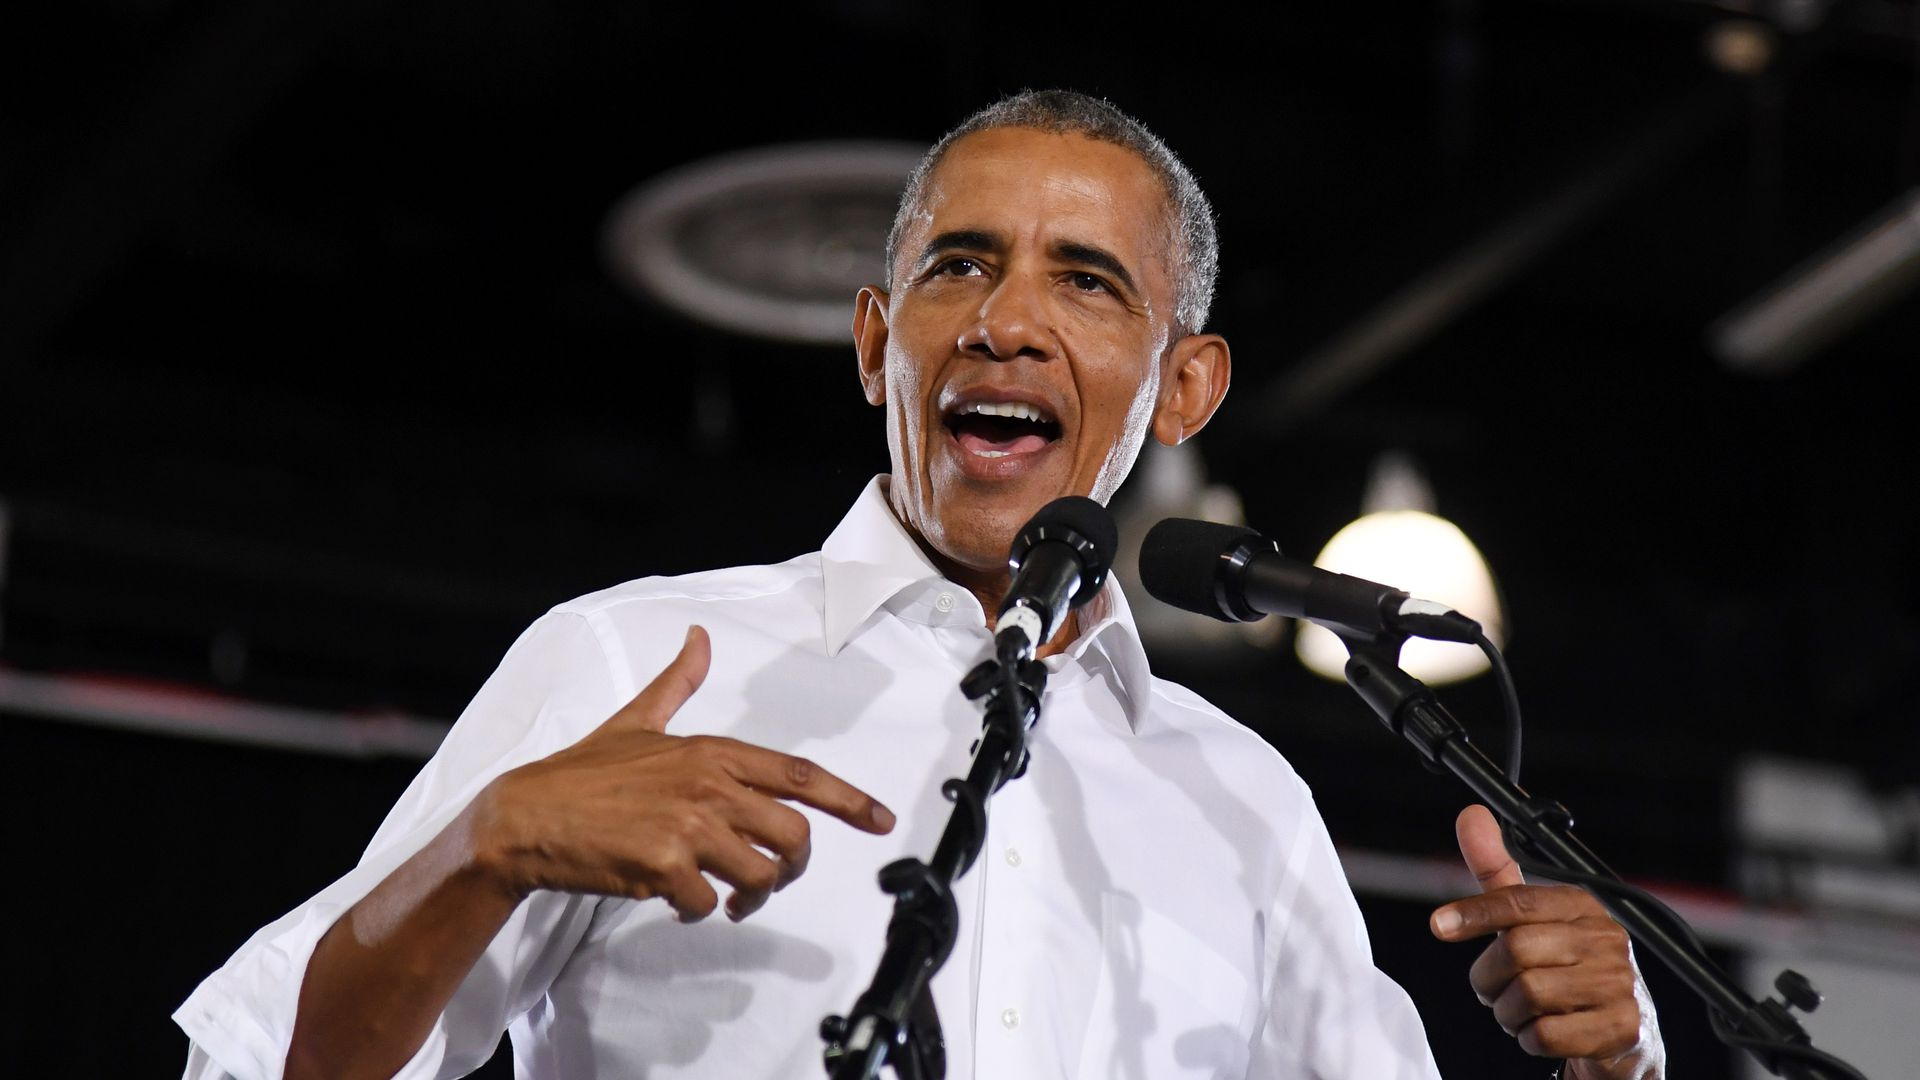 Obama at a campaign rally